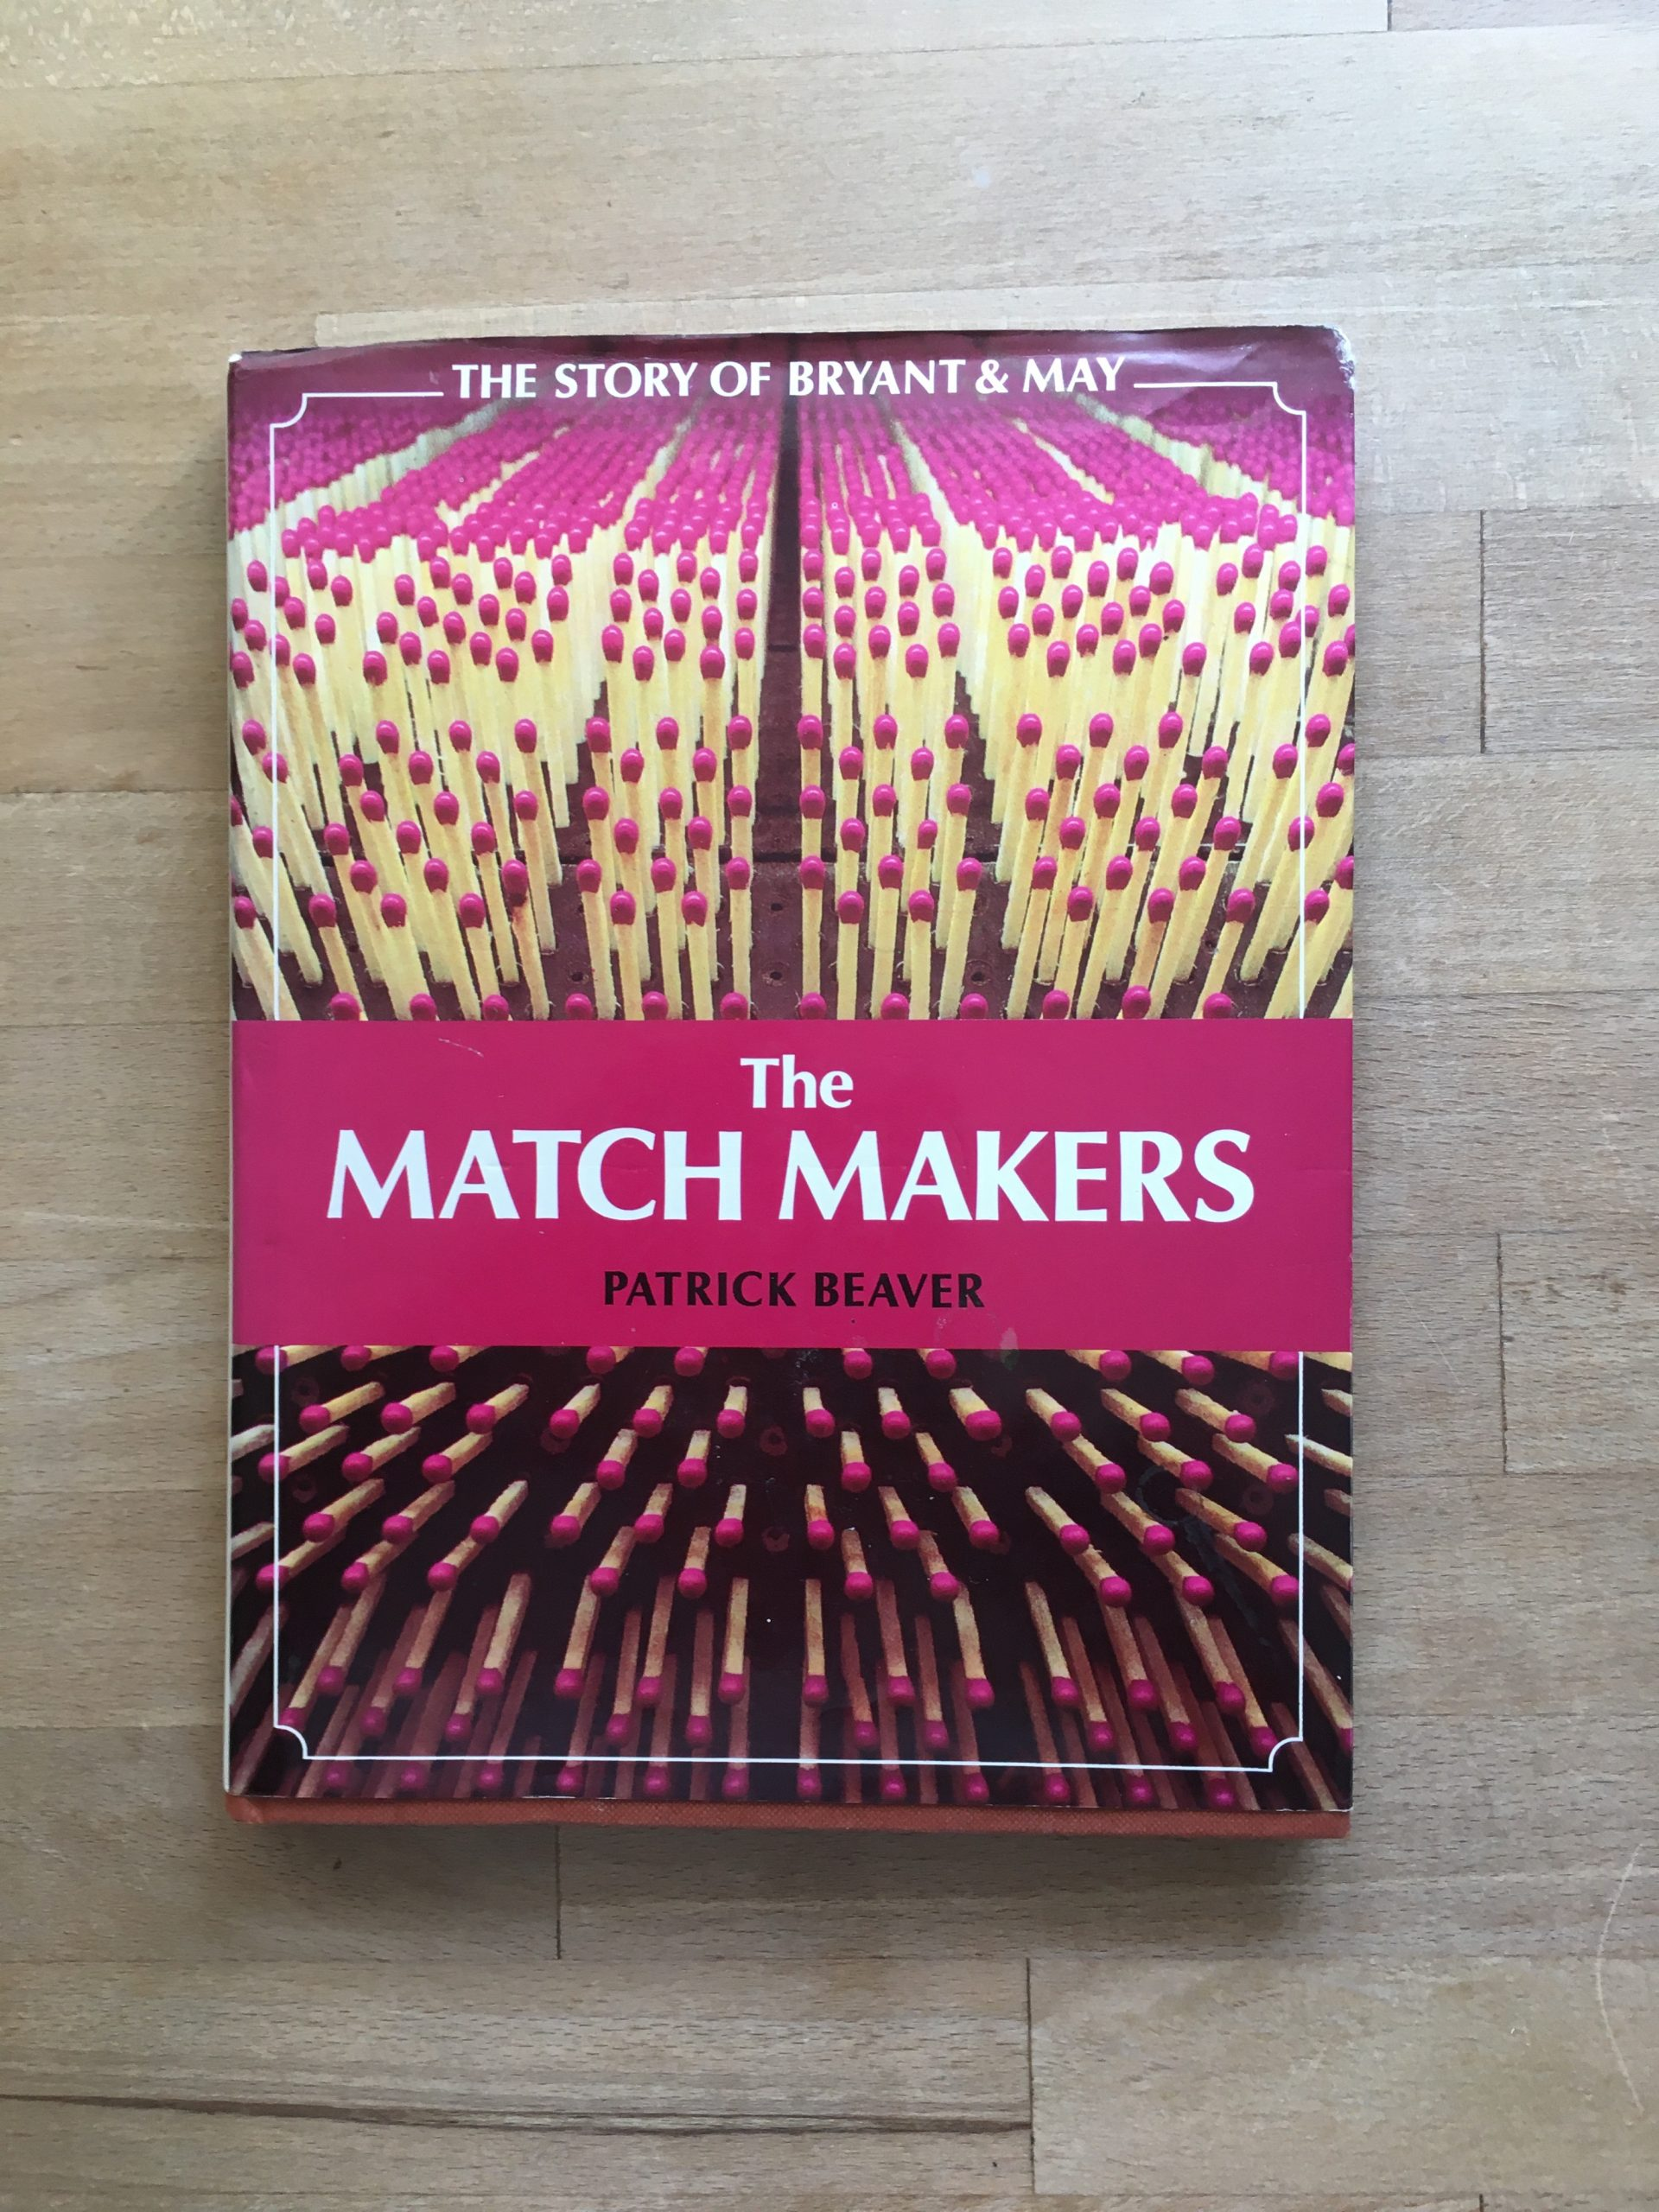 The Matchmakers by Patrick Beaver 1985